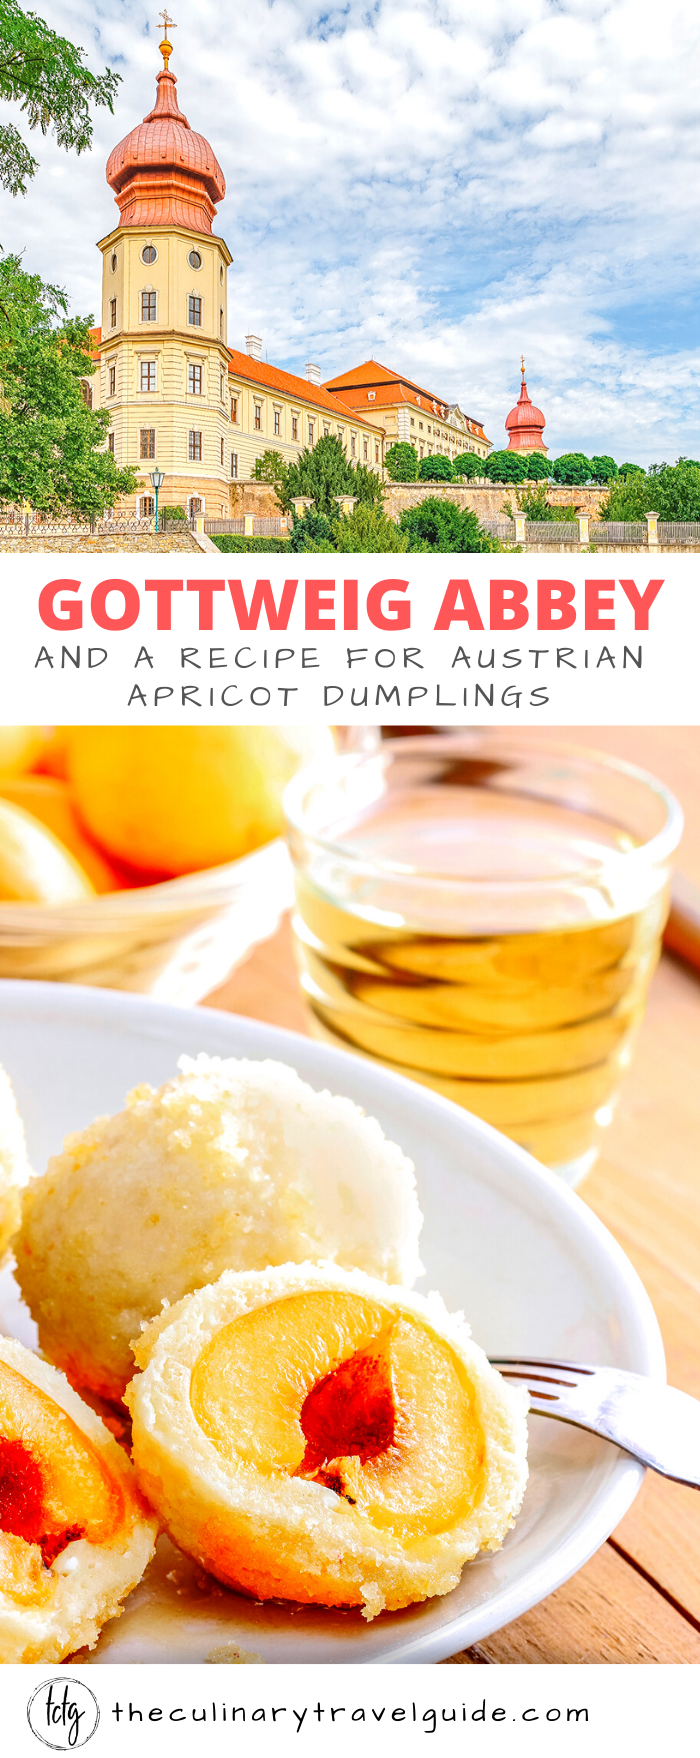 Pinterest Graphic for Gottweig Abbey